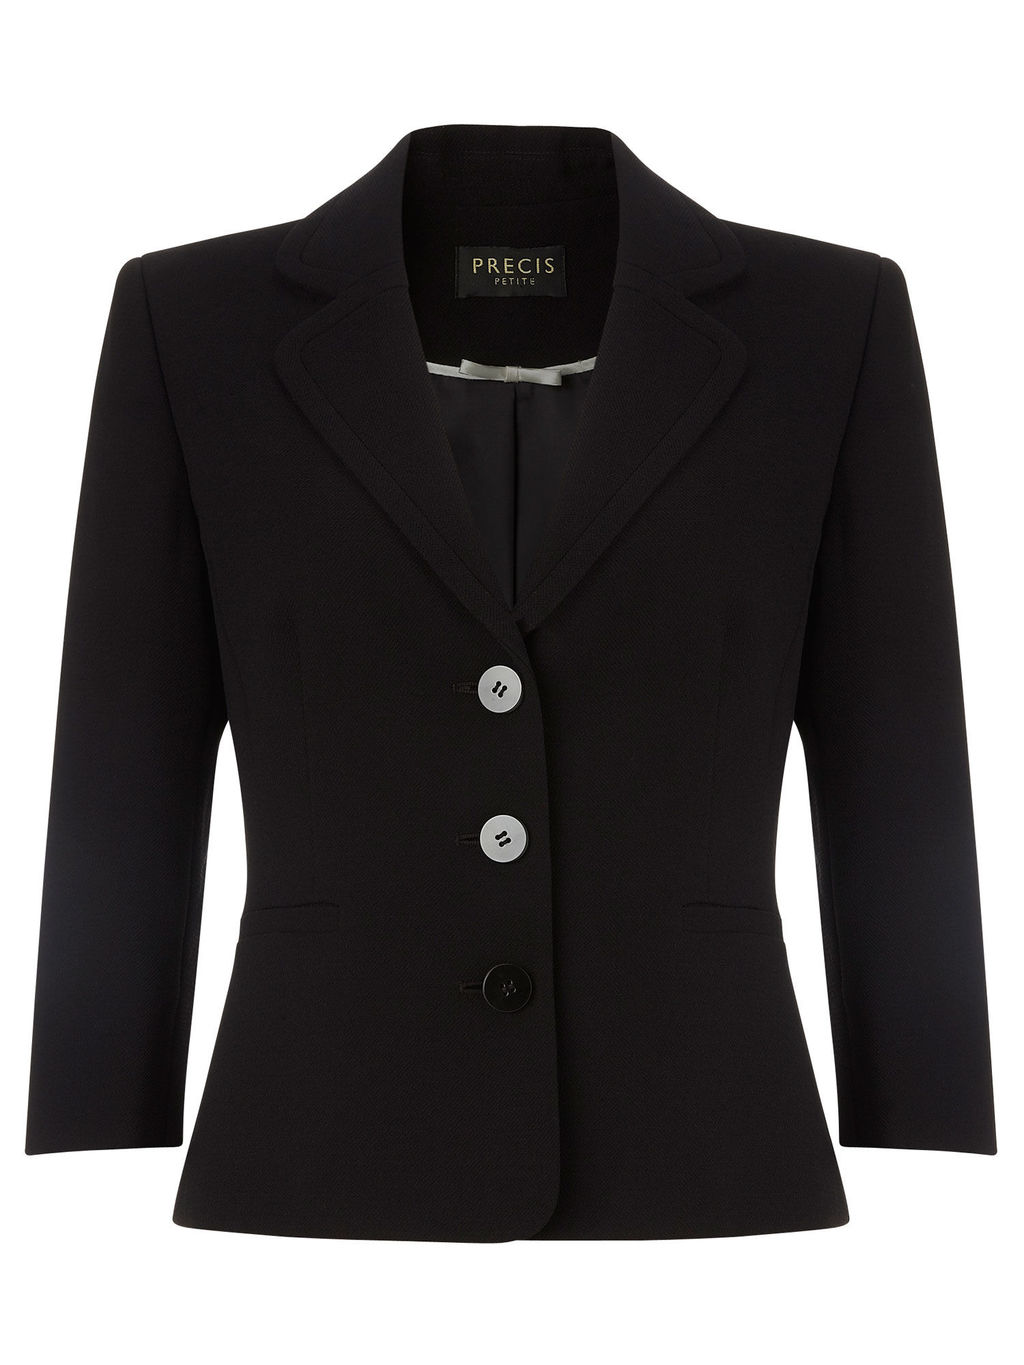 Emily Tailored Jacket - pattern: plain; style: single breasted blazer; collar: standard lapel/rever collar; predominant colour: black; occasions: work; length: standard; fit: tailored/fitted; fibres: polyester/polyamide - 100%; sleeve length: 3/4 length; sleeve style: standard; texture group: crepes; collar break: medium; pattern type: fabric; season: a/w 2015; wardrobe: investment